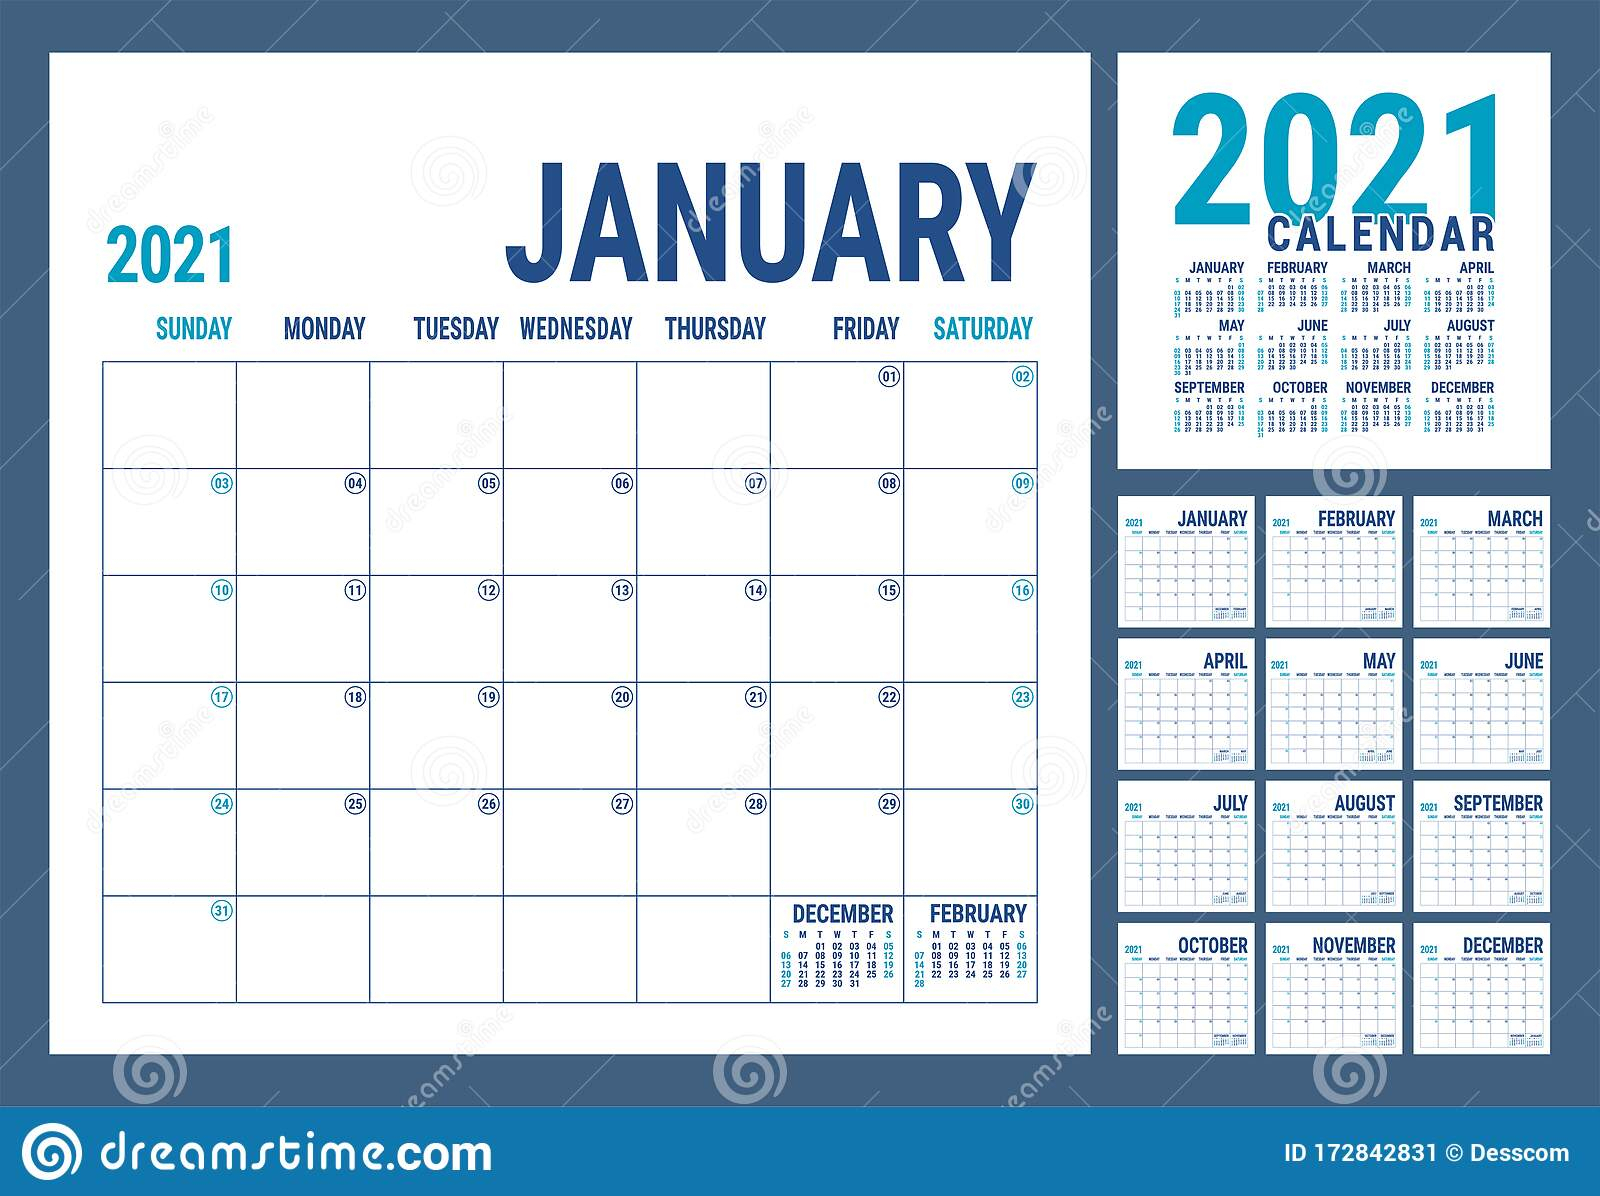 Calendar 2021. English Calender Template. Vector Square Grid. Office Business Planning. Creative